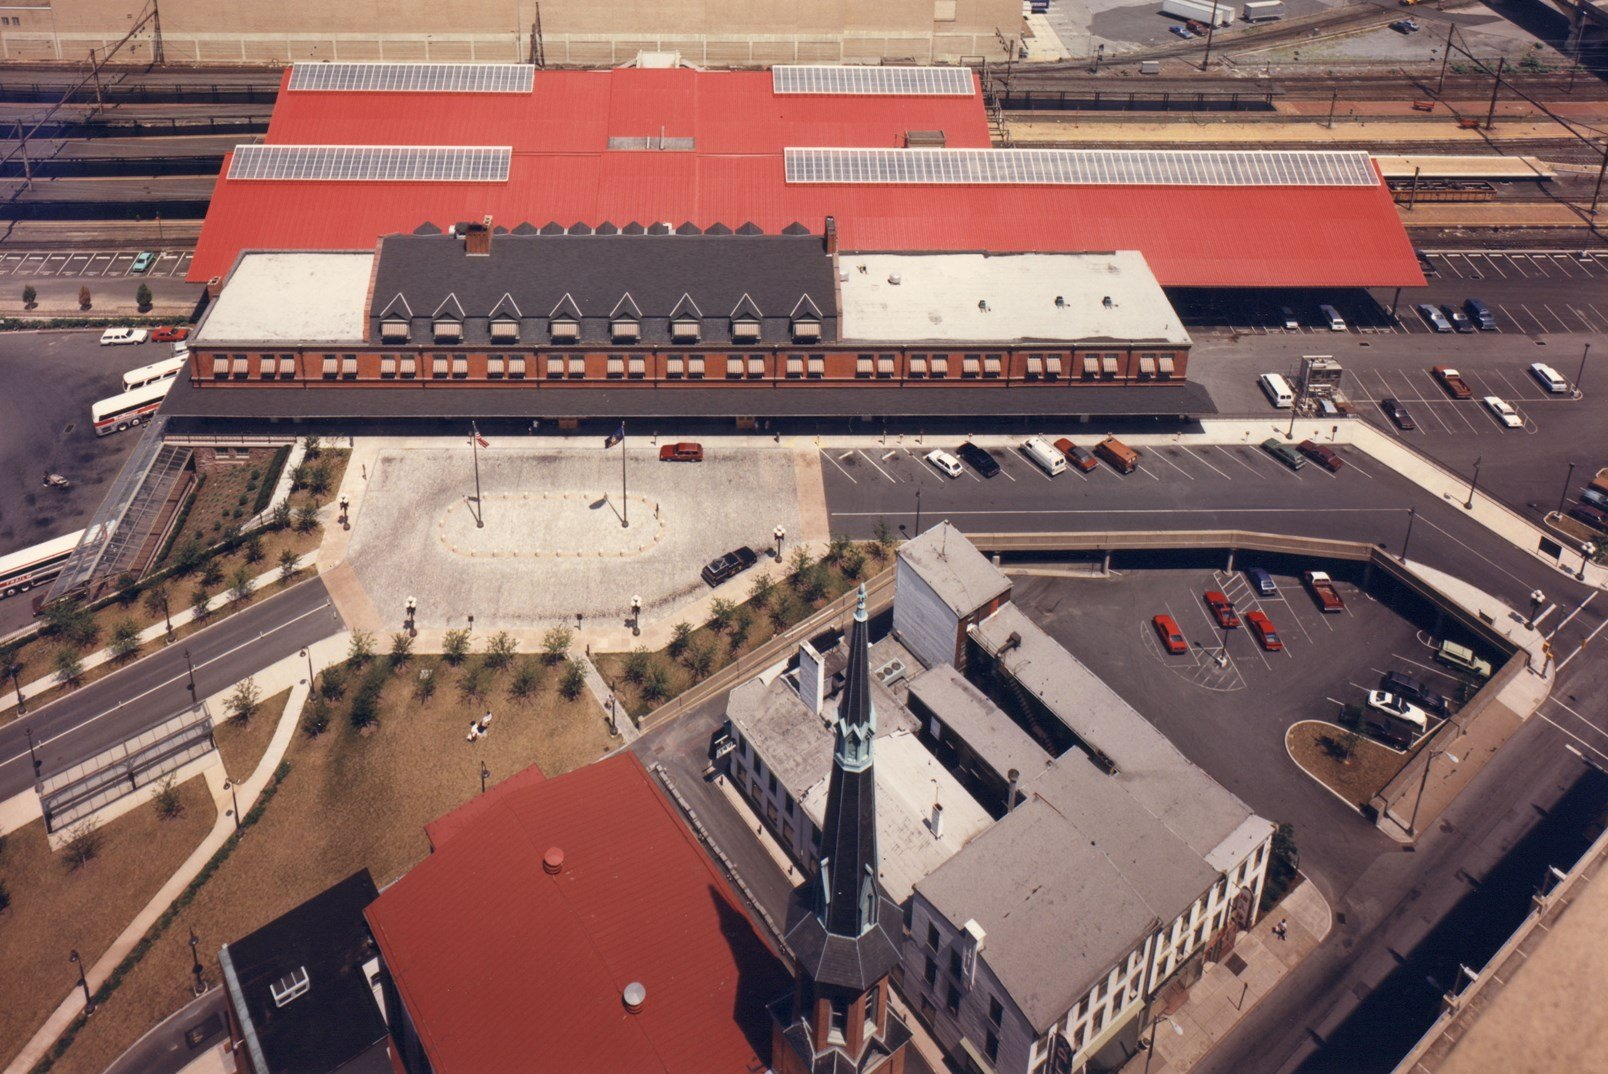 An aerial shot of the HTC with the massive, red-roofed train sheds located behind the station.